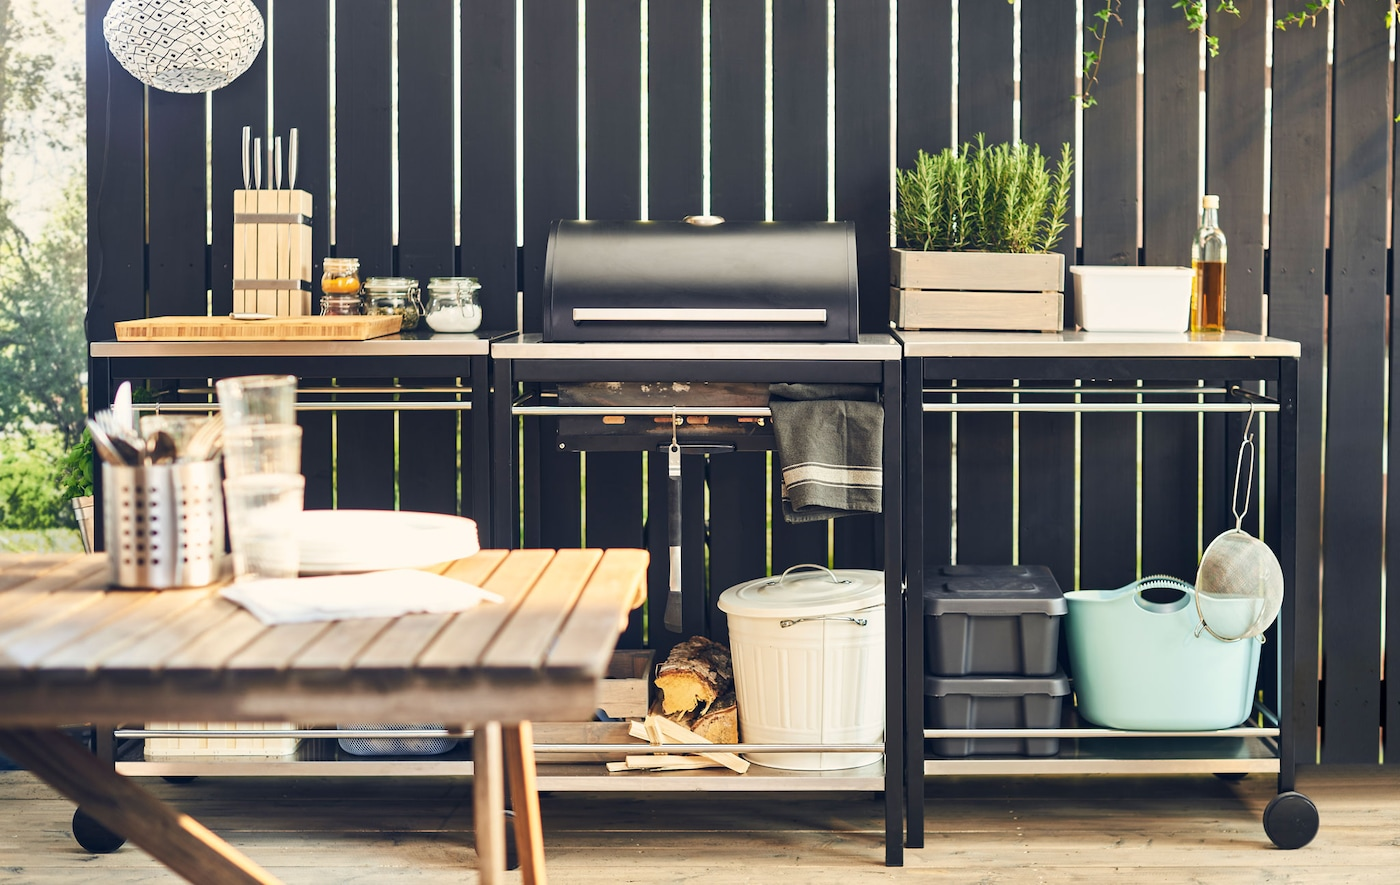 An outdoor kitchen made up of three units, including a grill, stands against a black wooden fence.